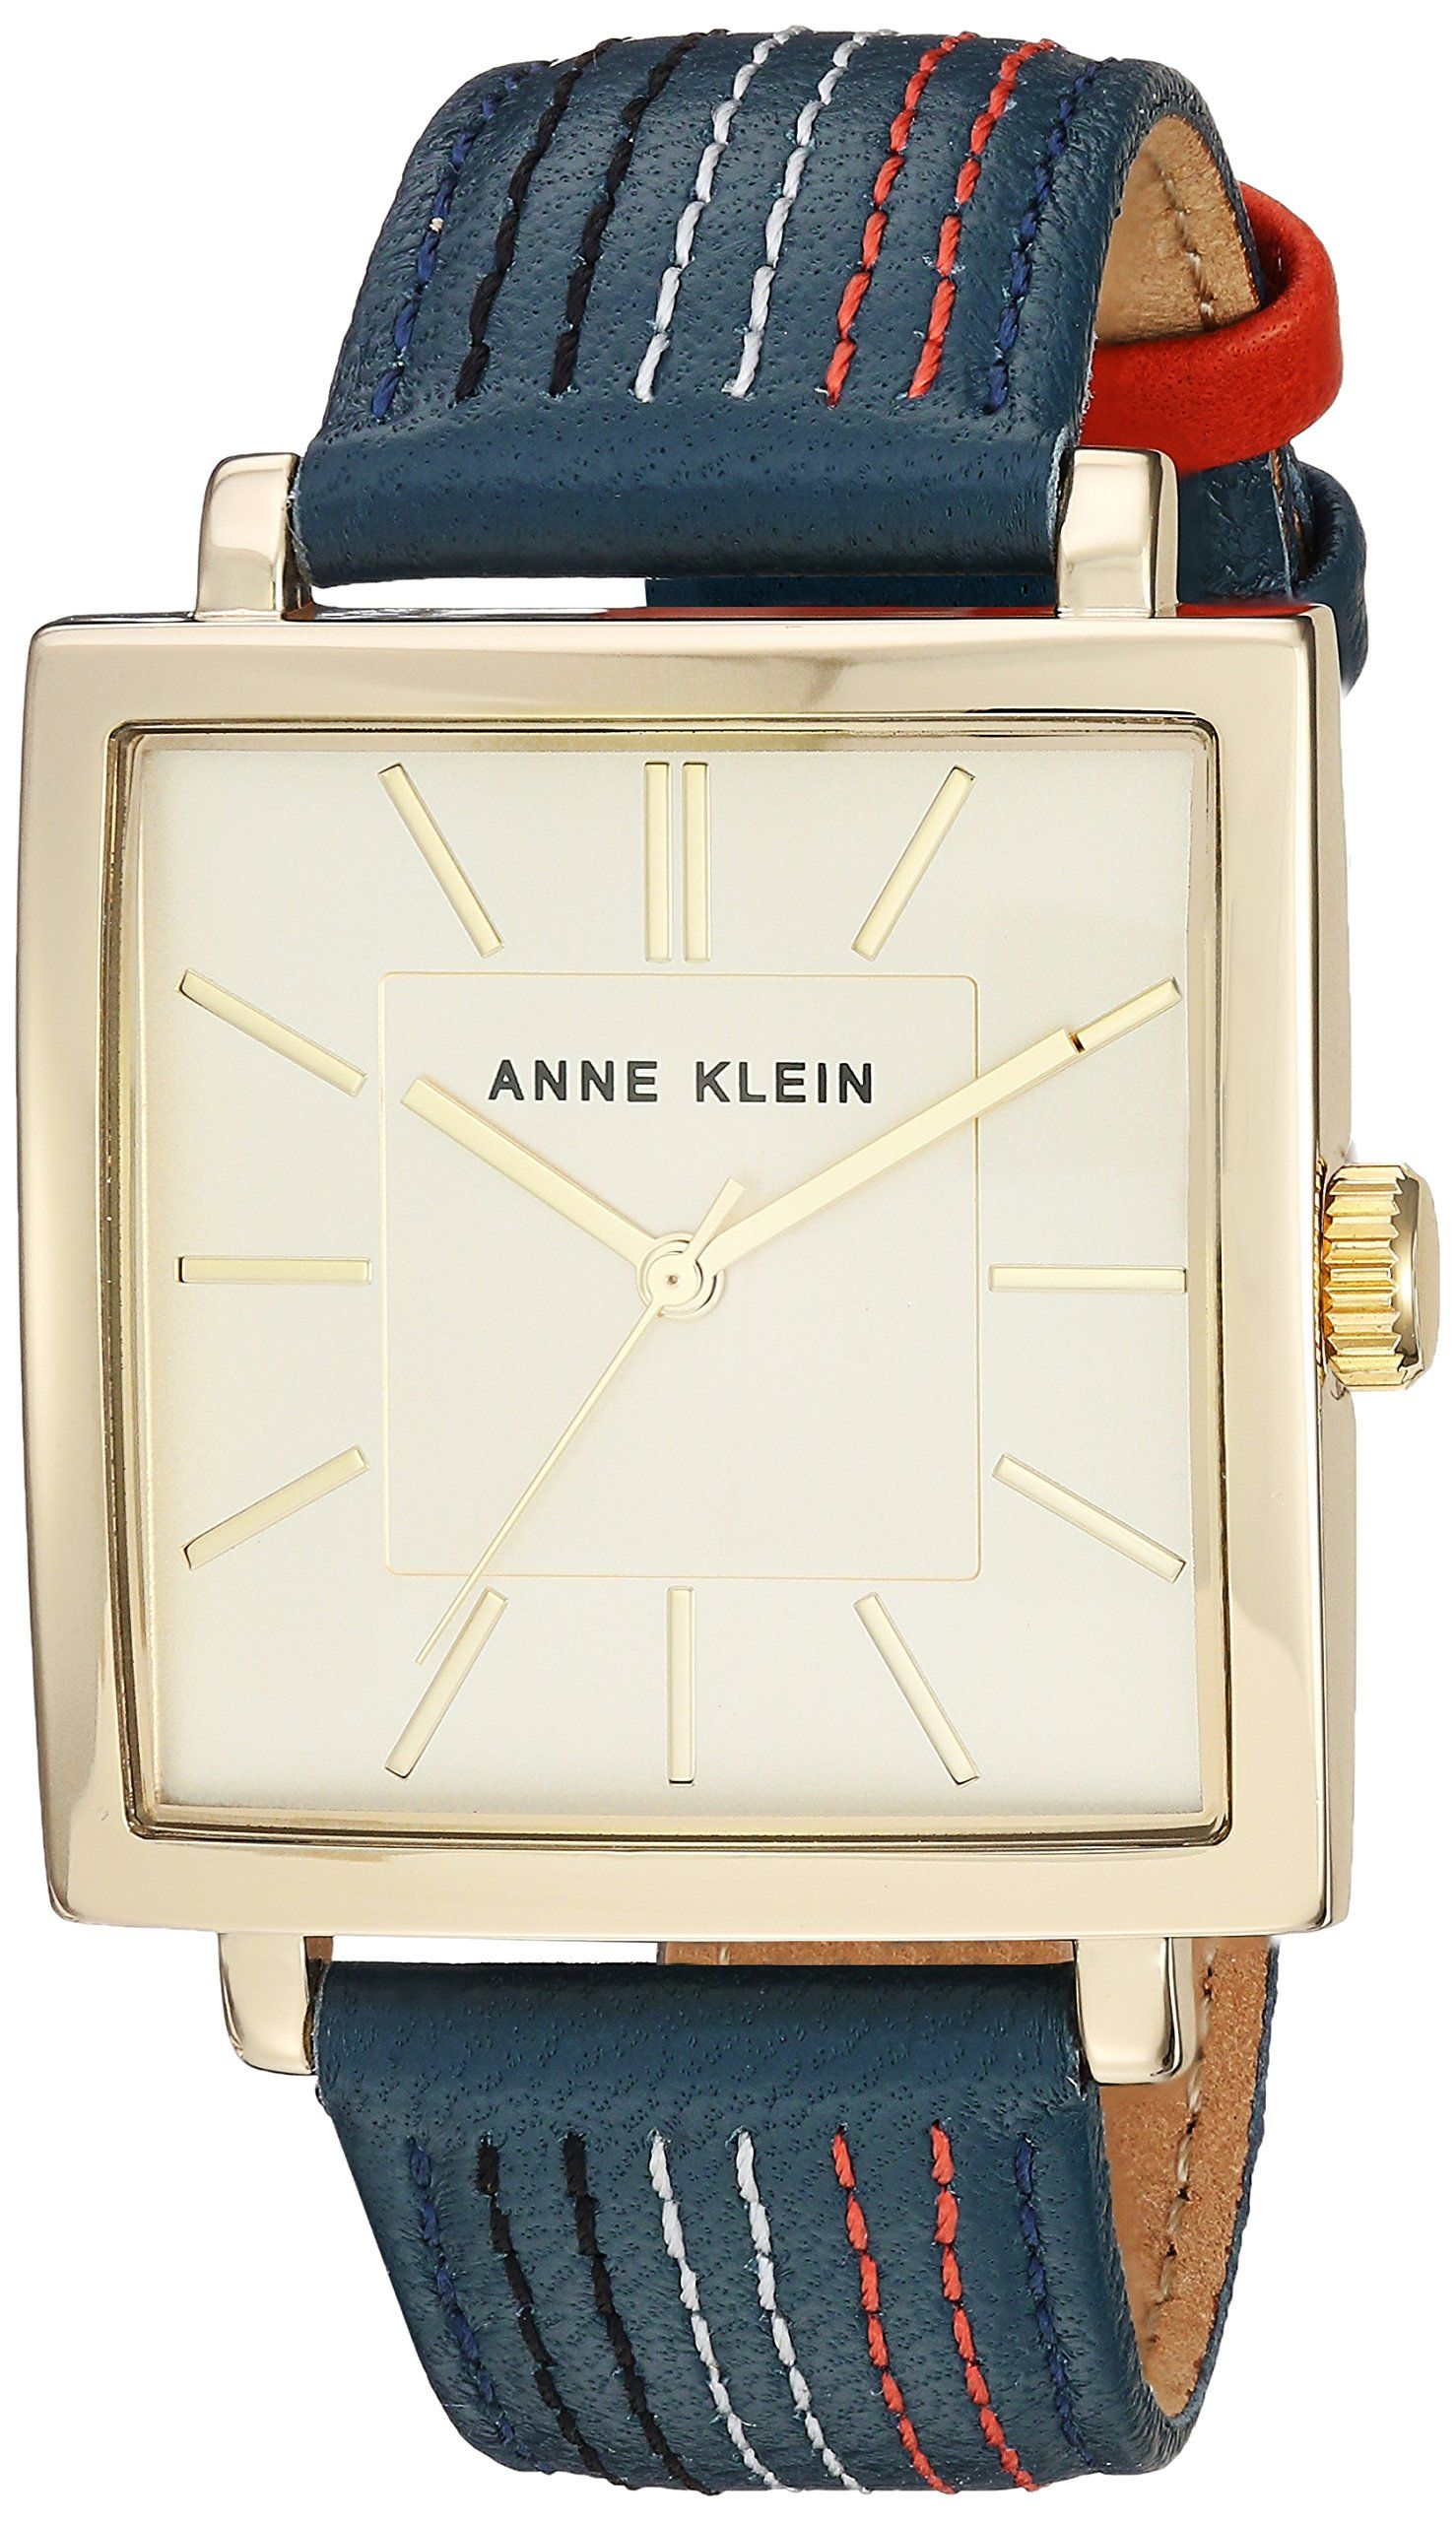 Anne Klein Women's AK/2740CHBL Gold-Tone and Navy Blue Leather Strap Watch